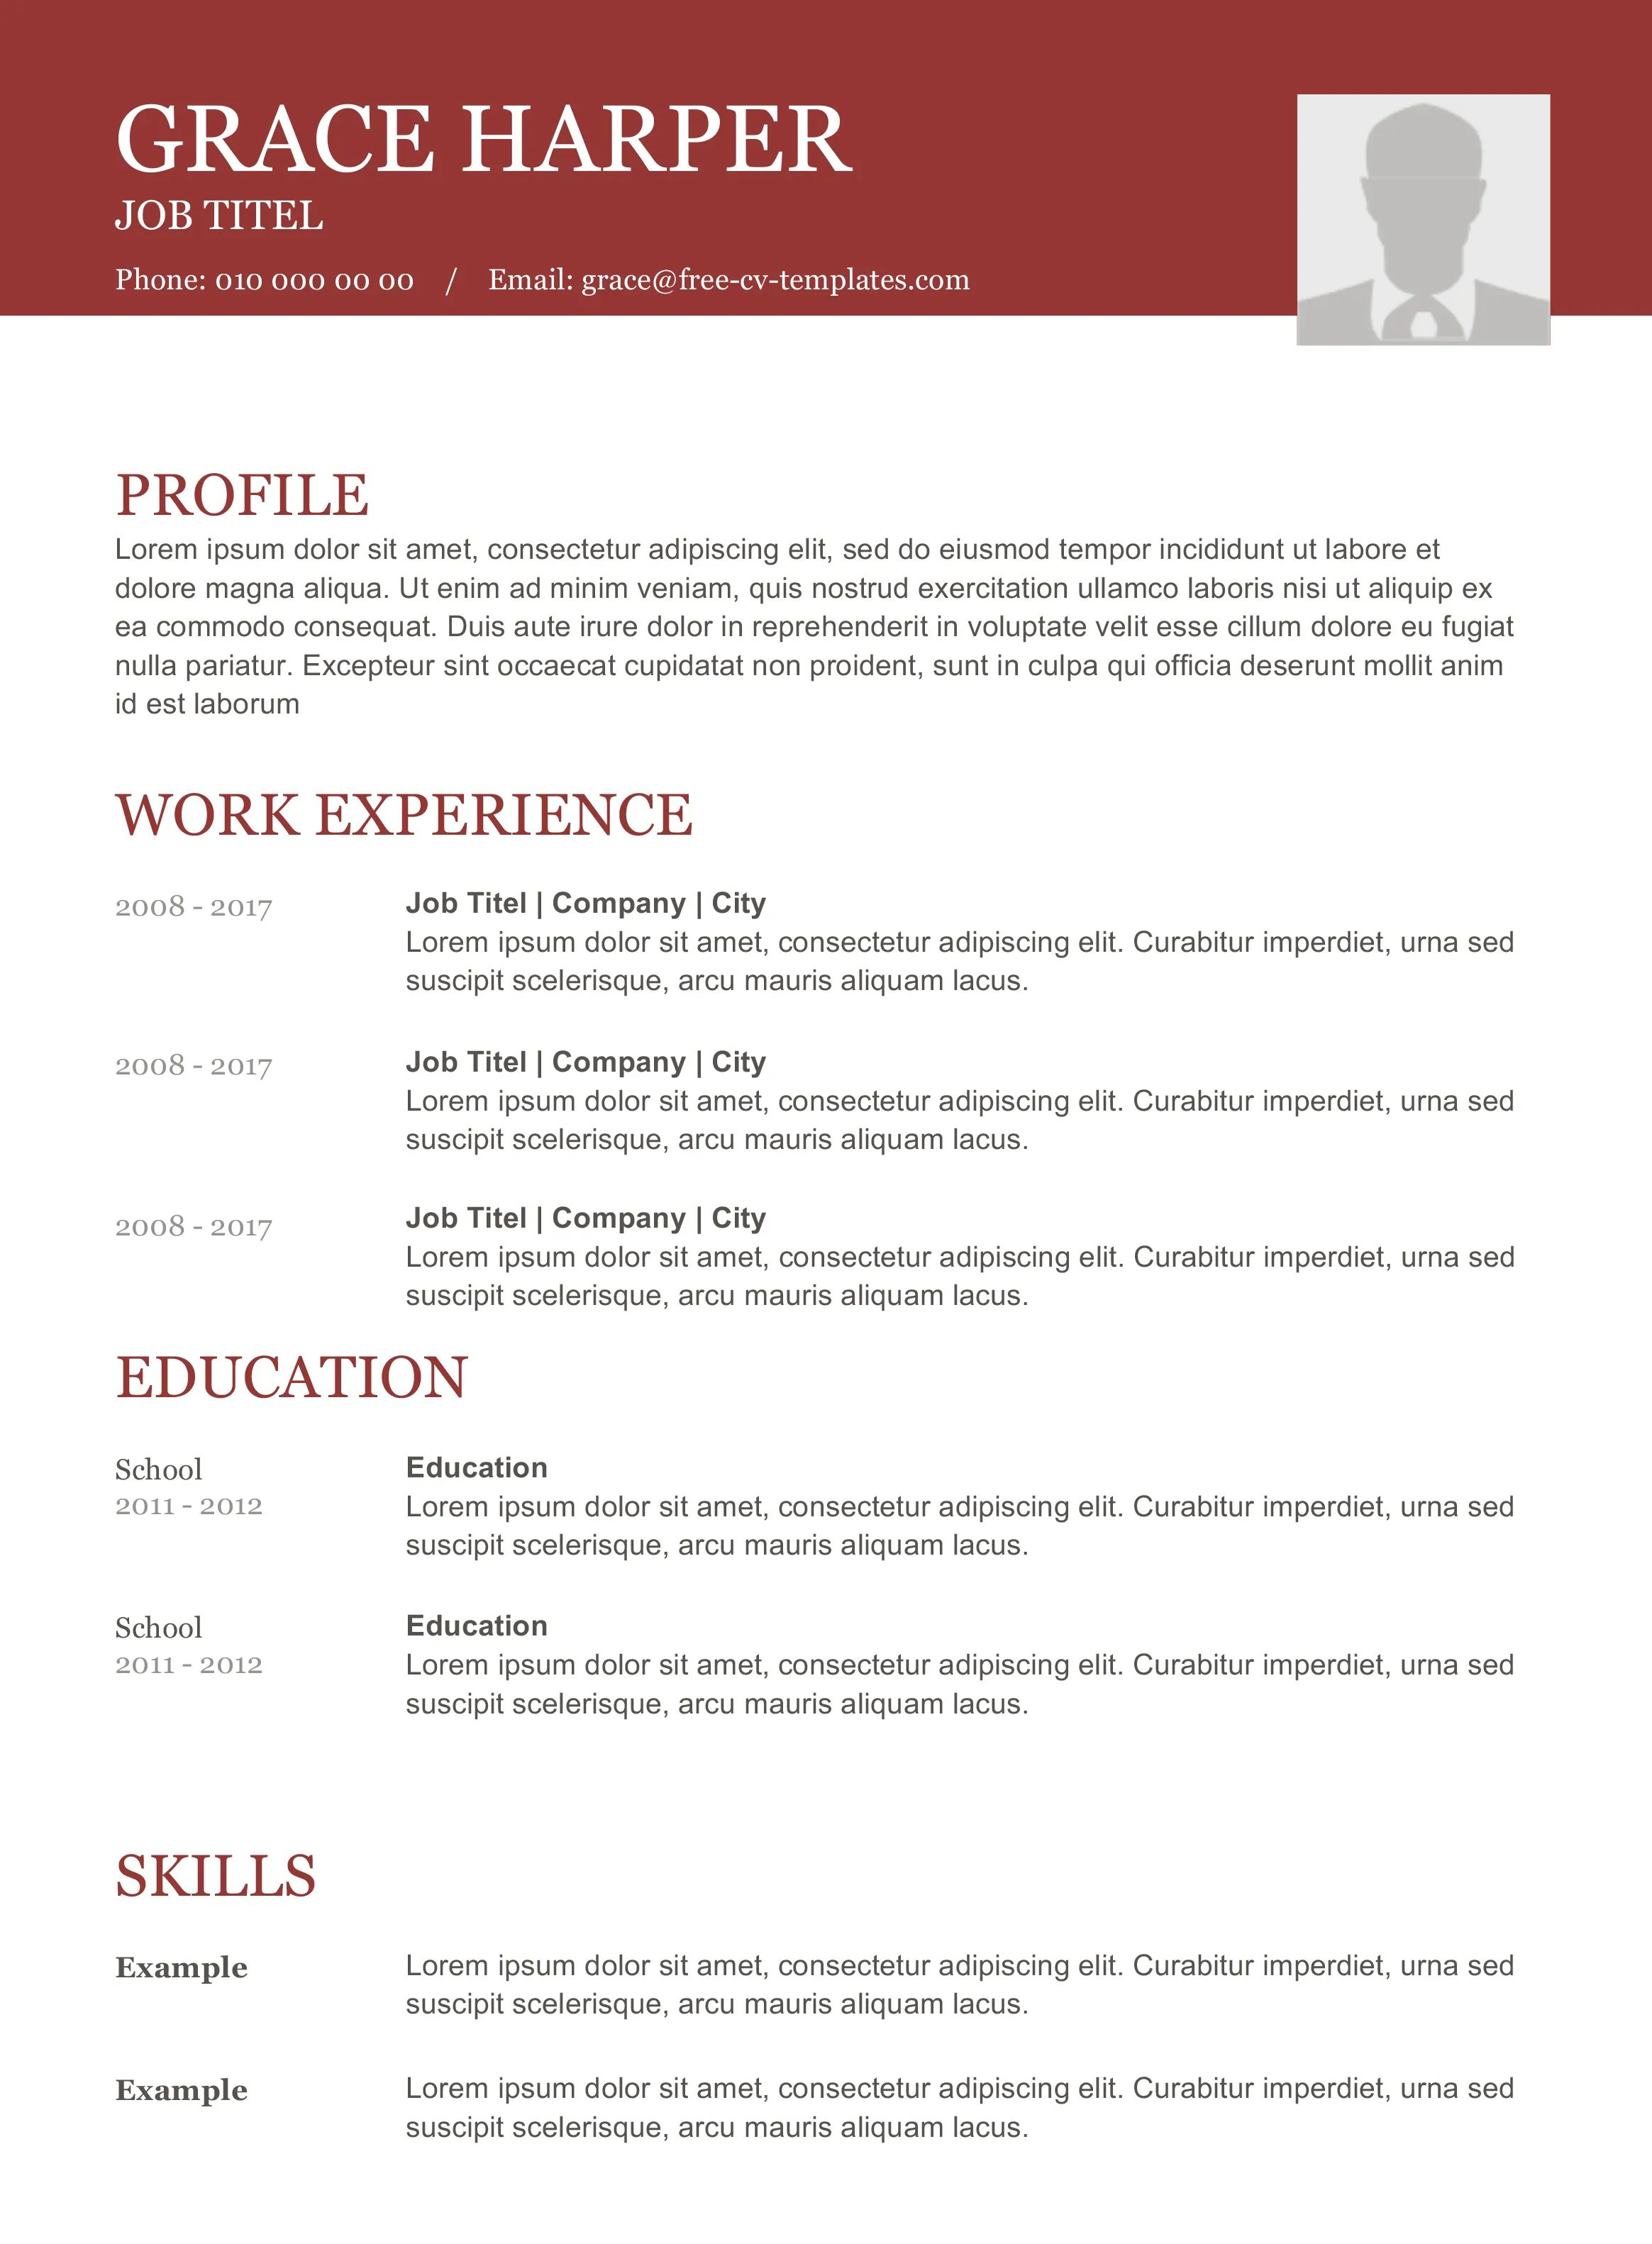 cv template download modern